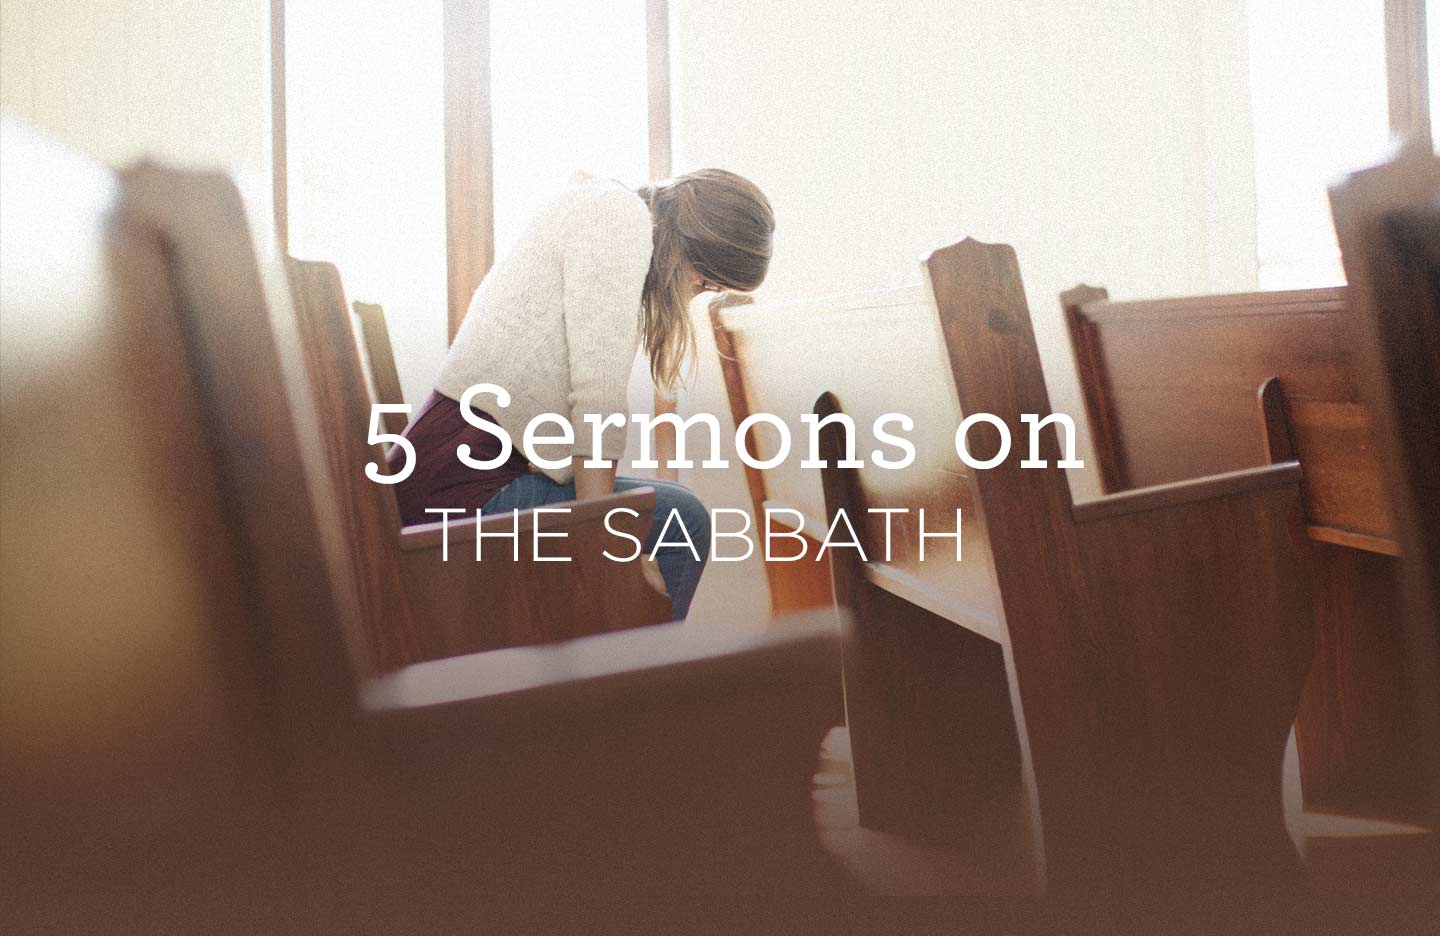 thumbnail image for 5 Sermons on the Sabbath